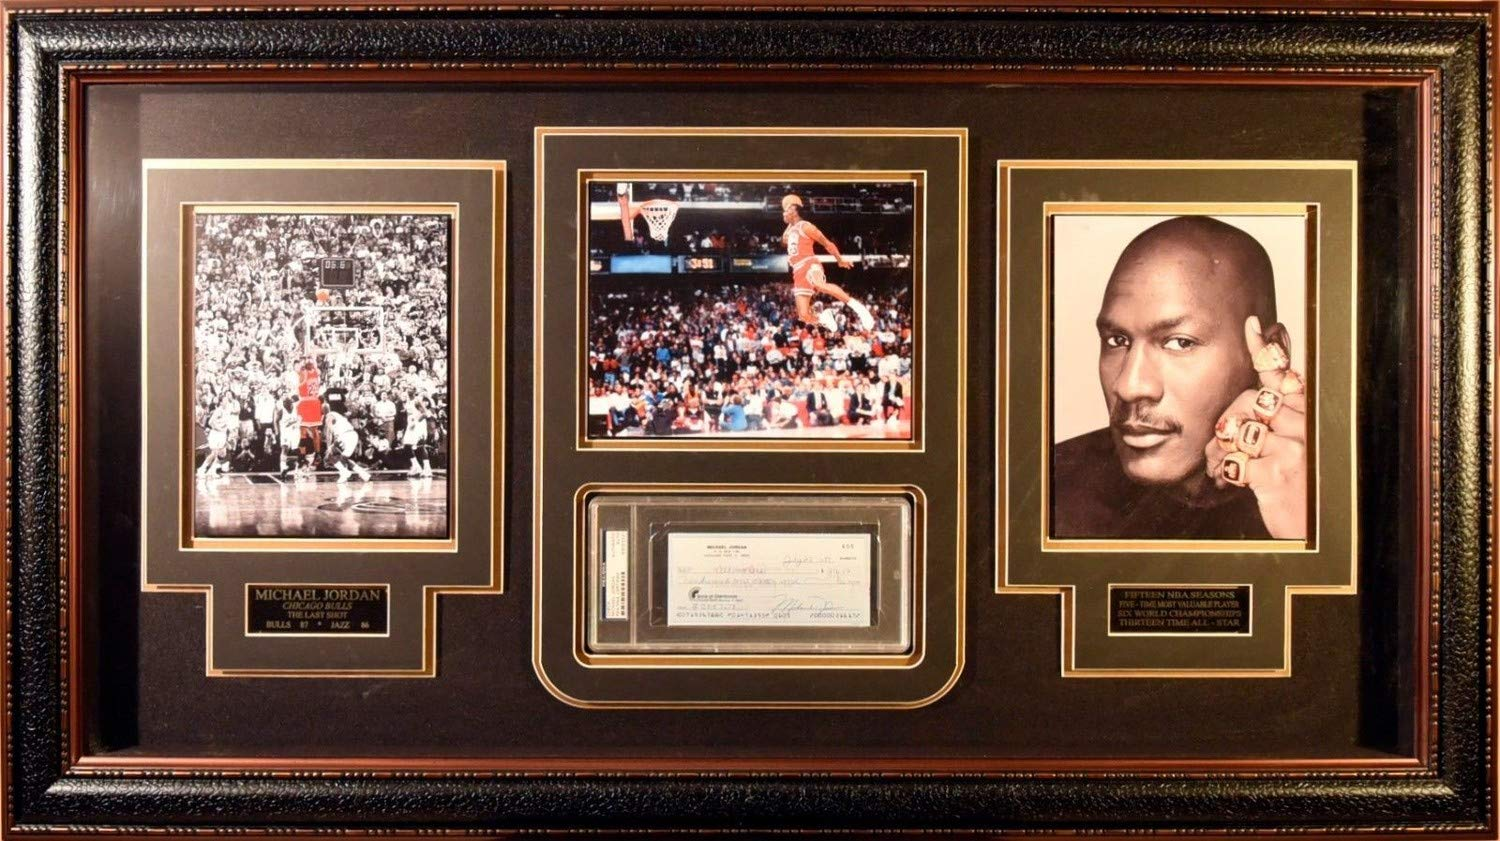 Michael Jordan Autographed Signed/Framed Personal Check From 1989 In PSA/DNA Encapsulation